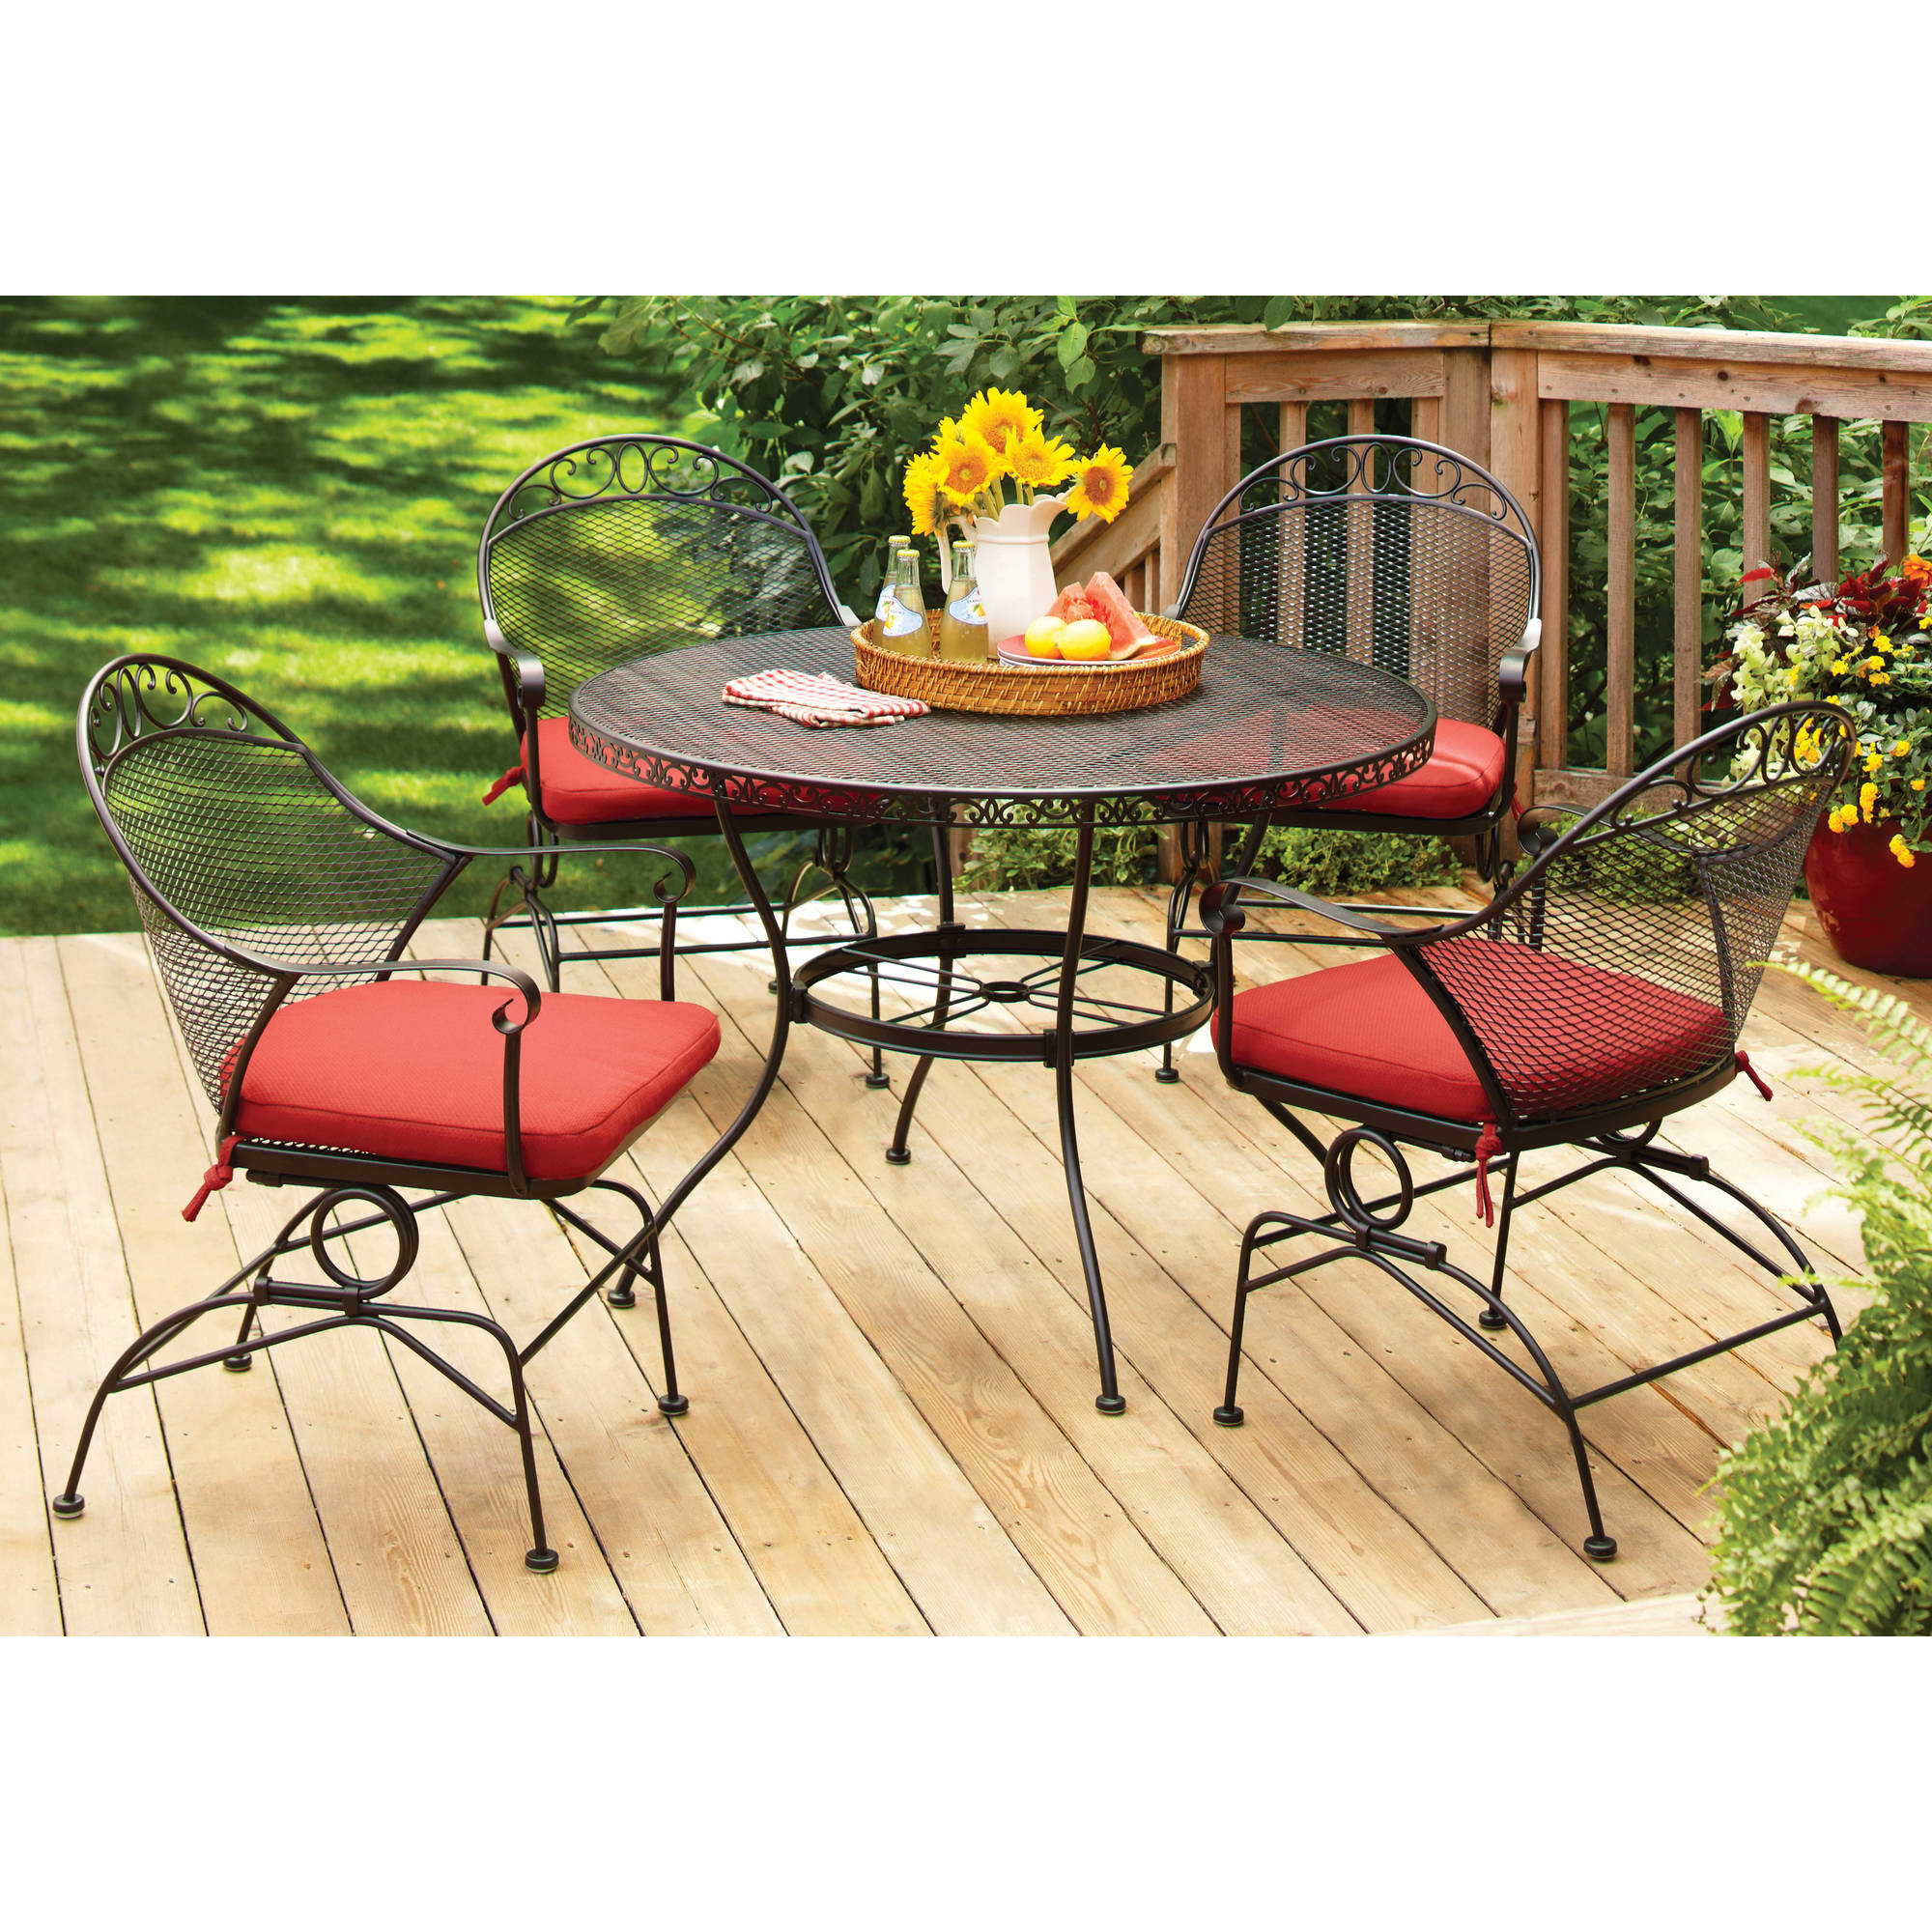 Gardens Wrought Iron Patio Dining Set